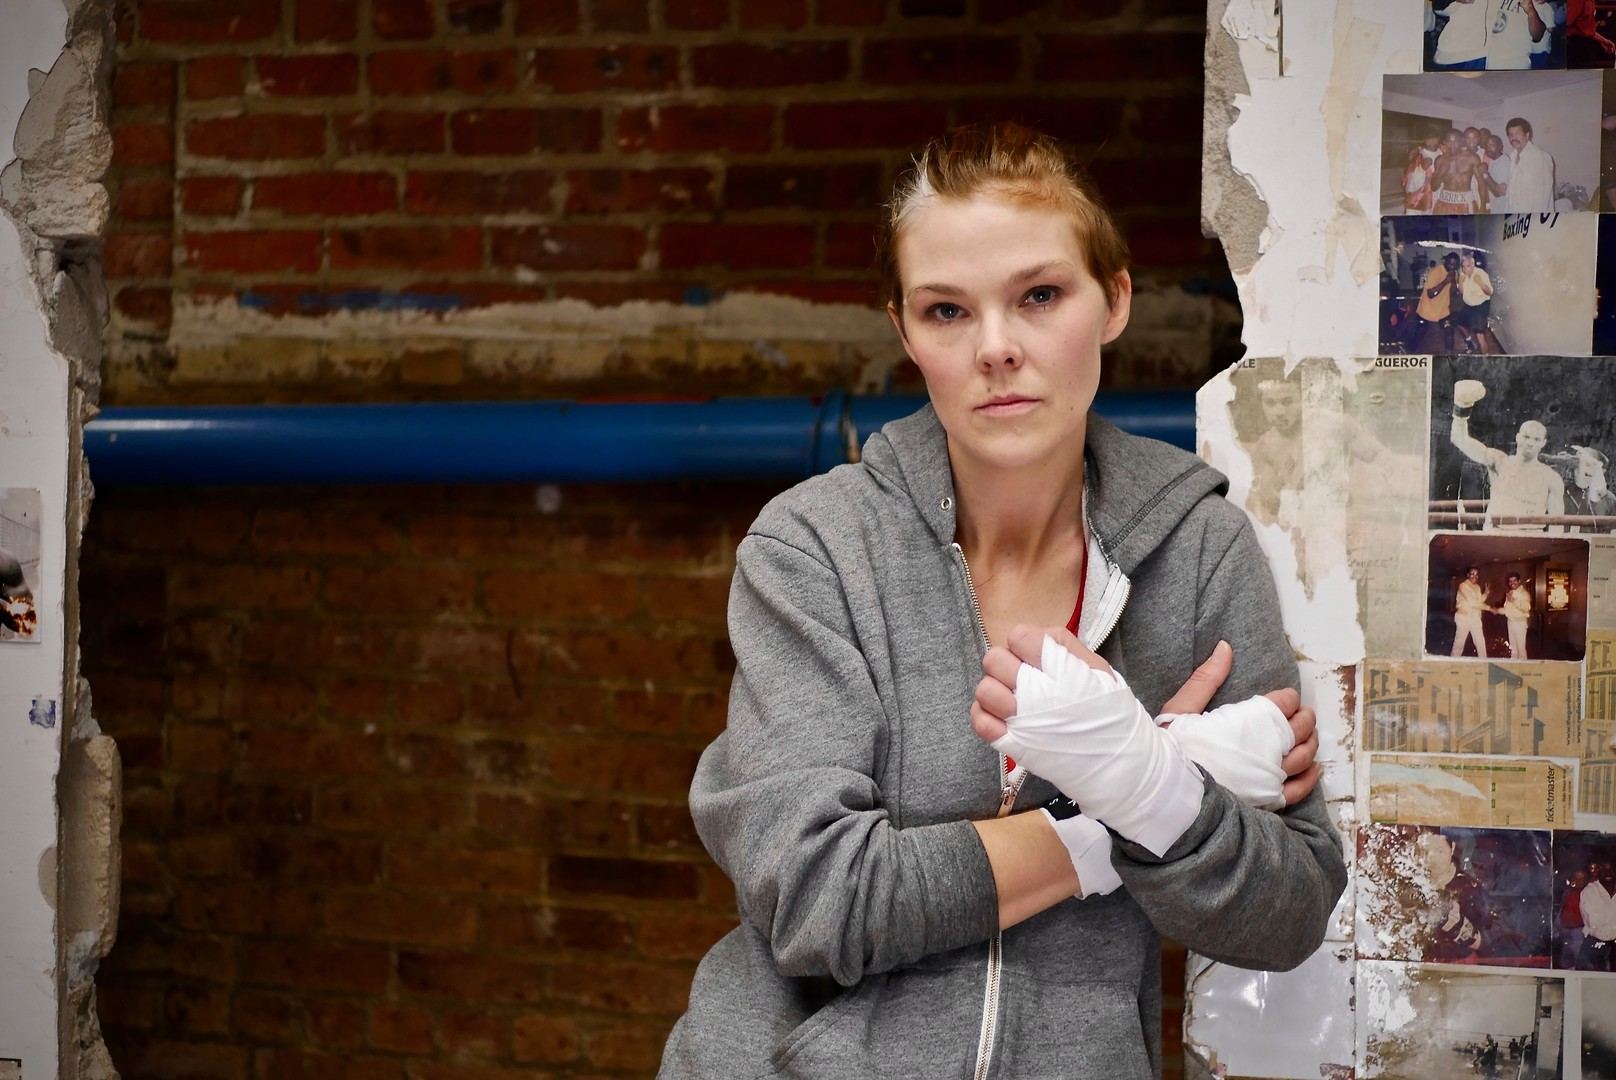 GIRL BOXER   by Lauren McCann  | 00:37 | A hard-up-single-mother and former boxer, is lured by the Irish mob into an underground boxing match where questions of right and wrong are challenged when the love of family is concerned.